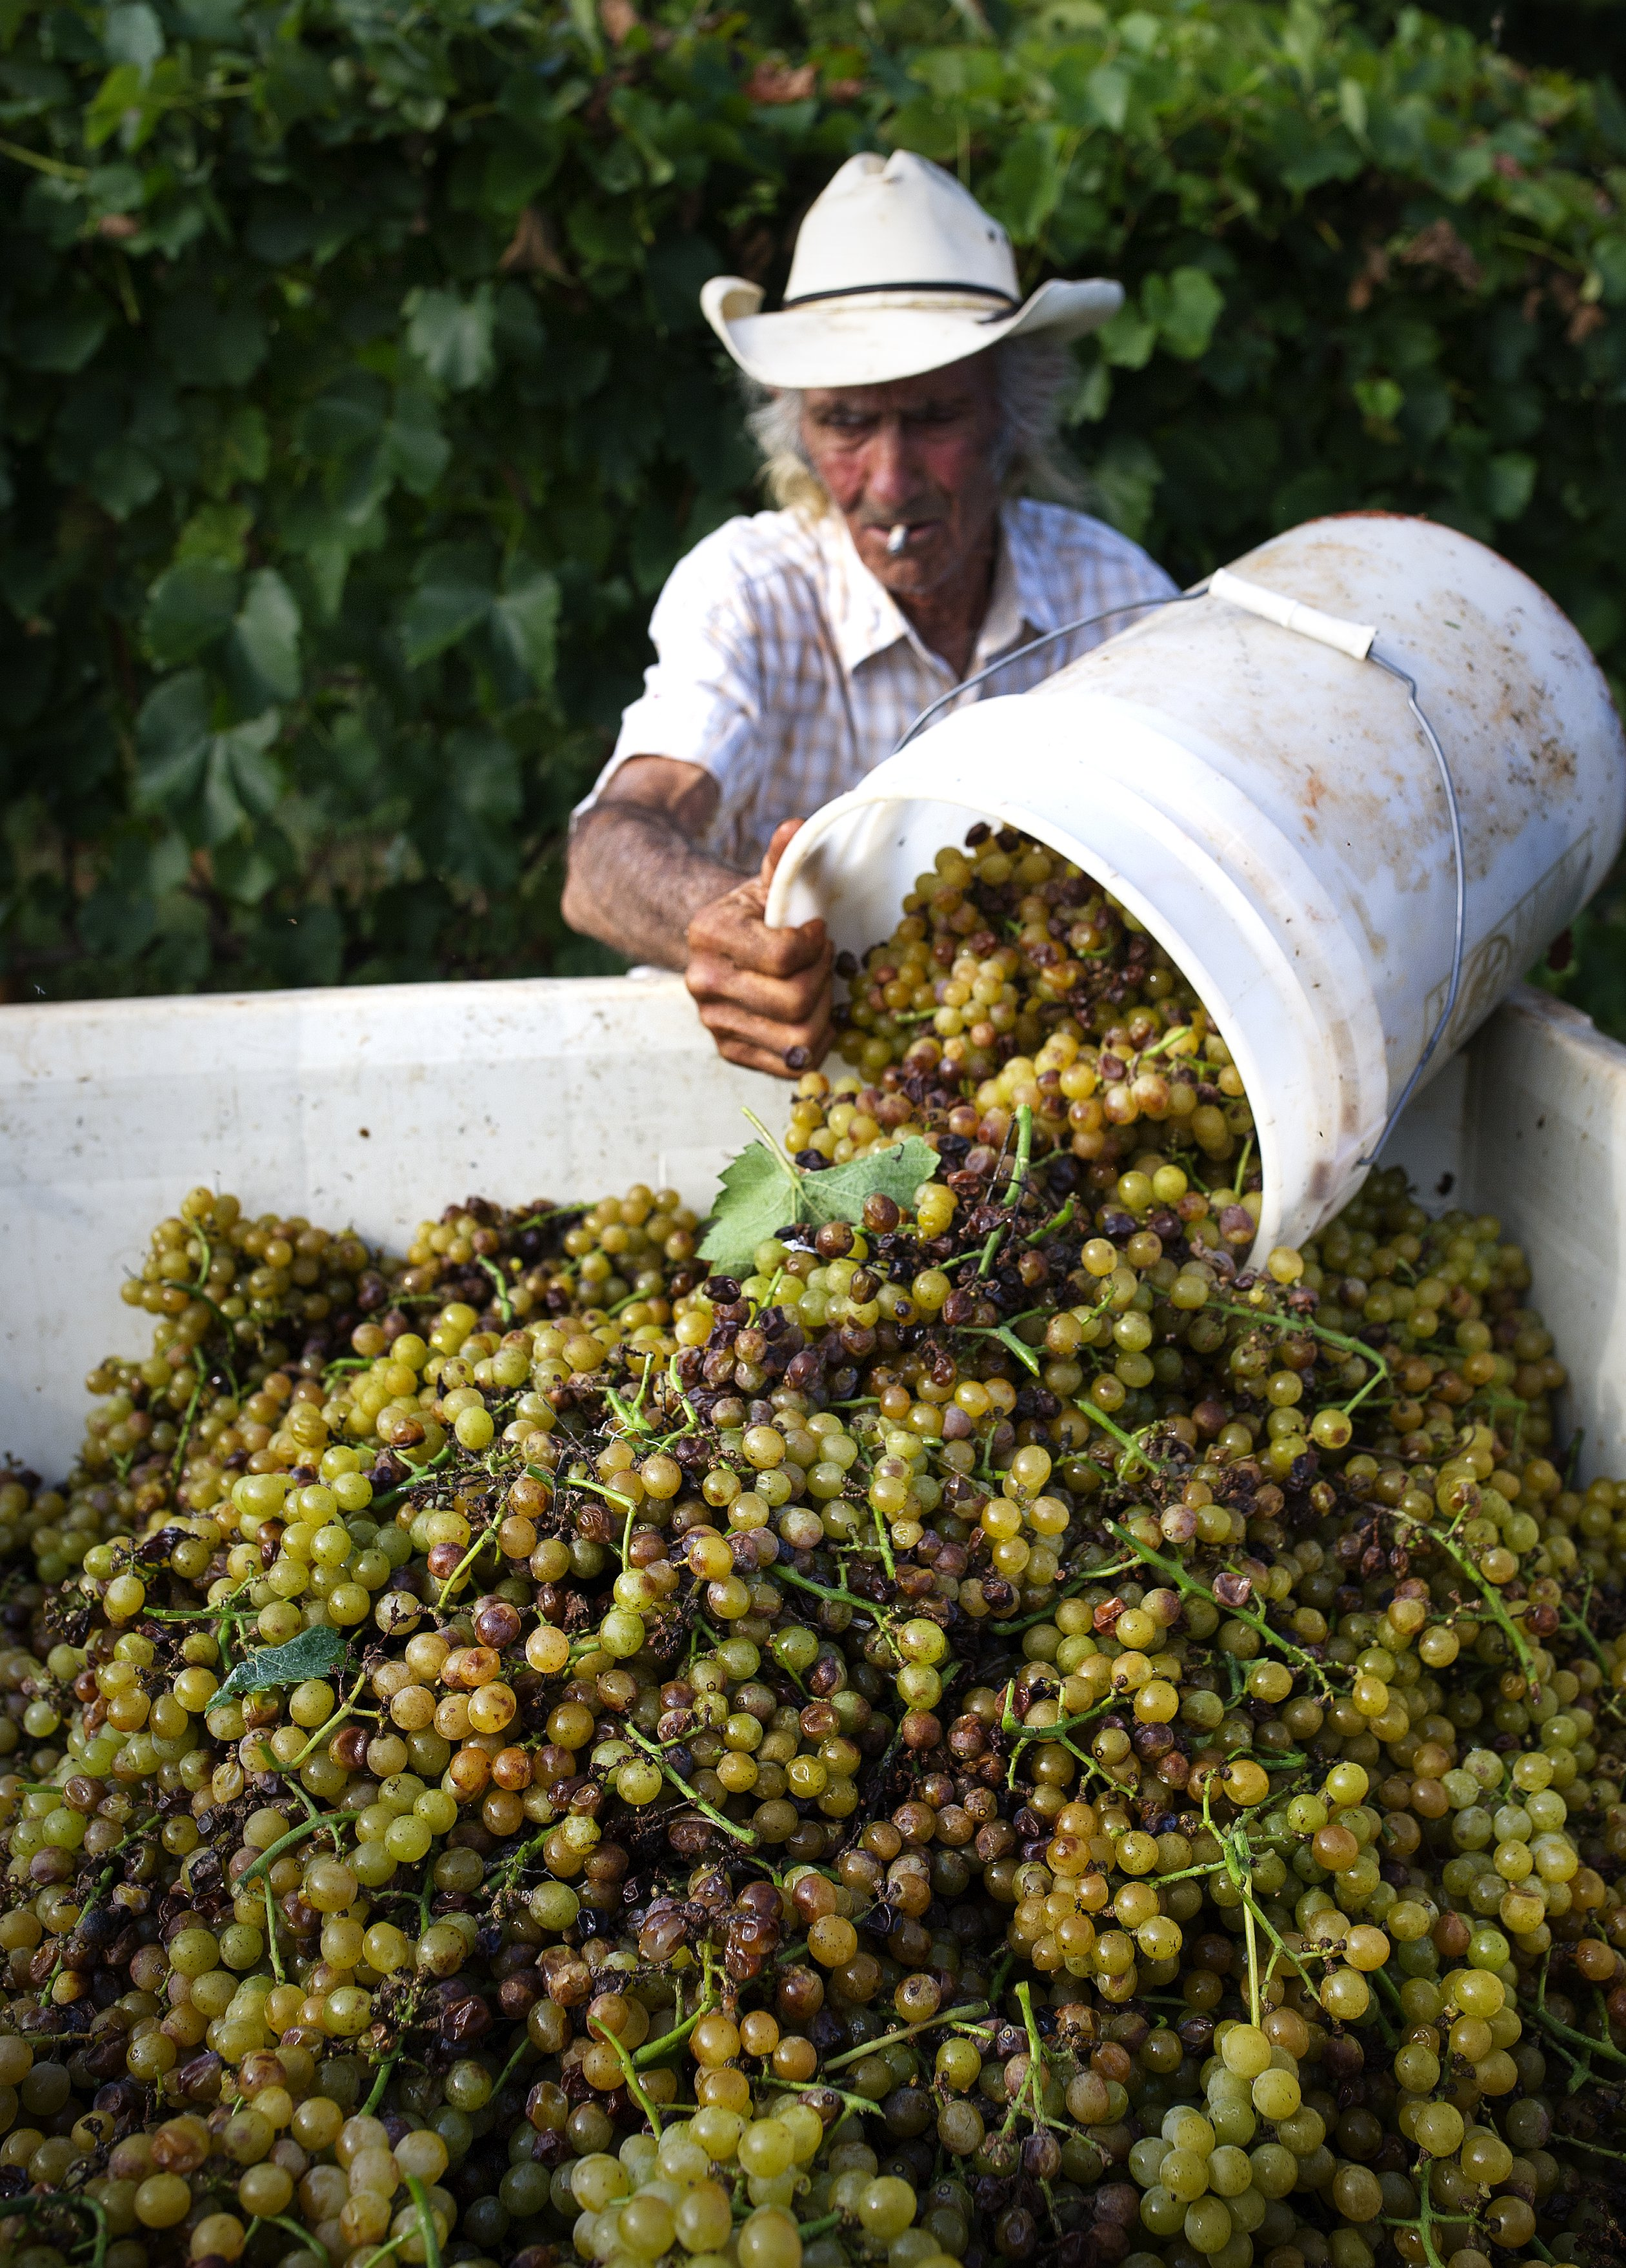 Gathering the grapes